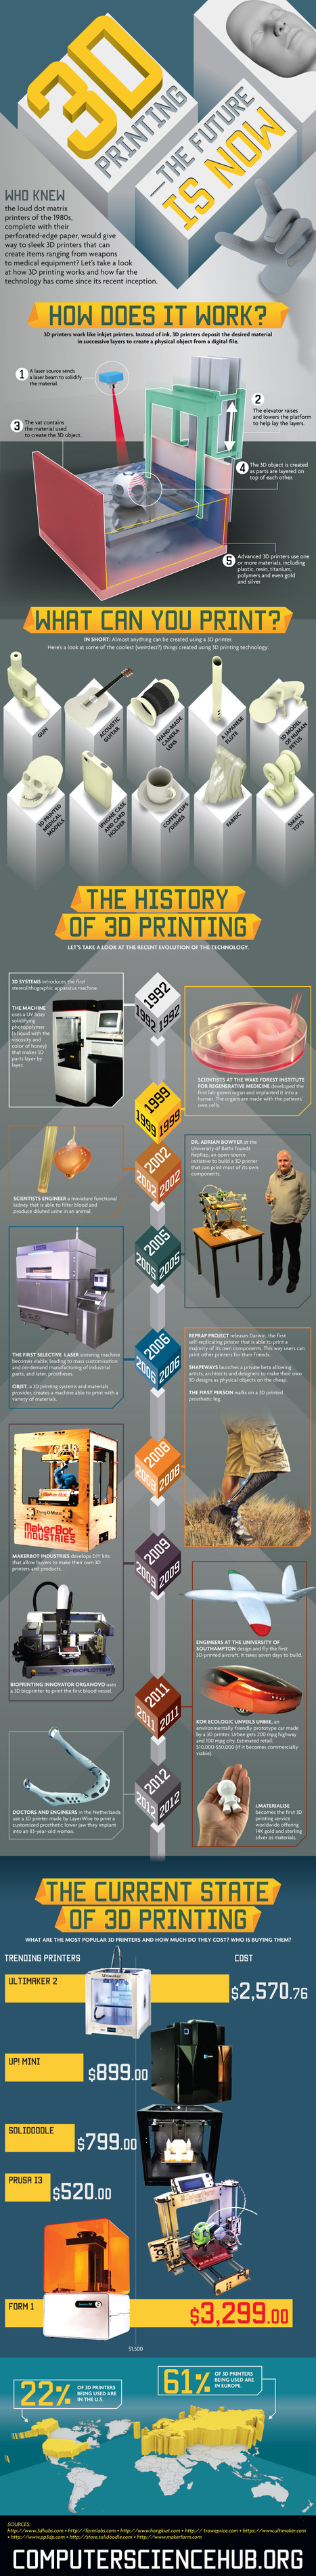 INFOGRAPHIC: 3D Printing: The Future is Now | Future of Cloud Computing and IoT | Scoop.it